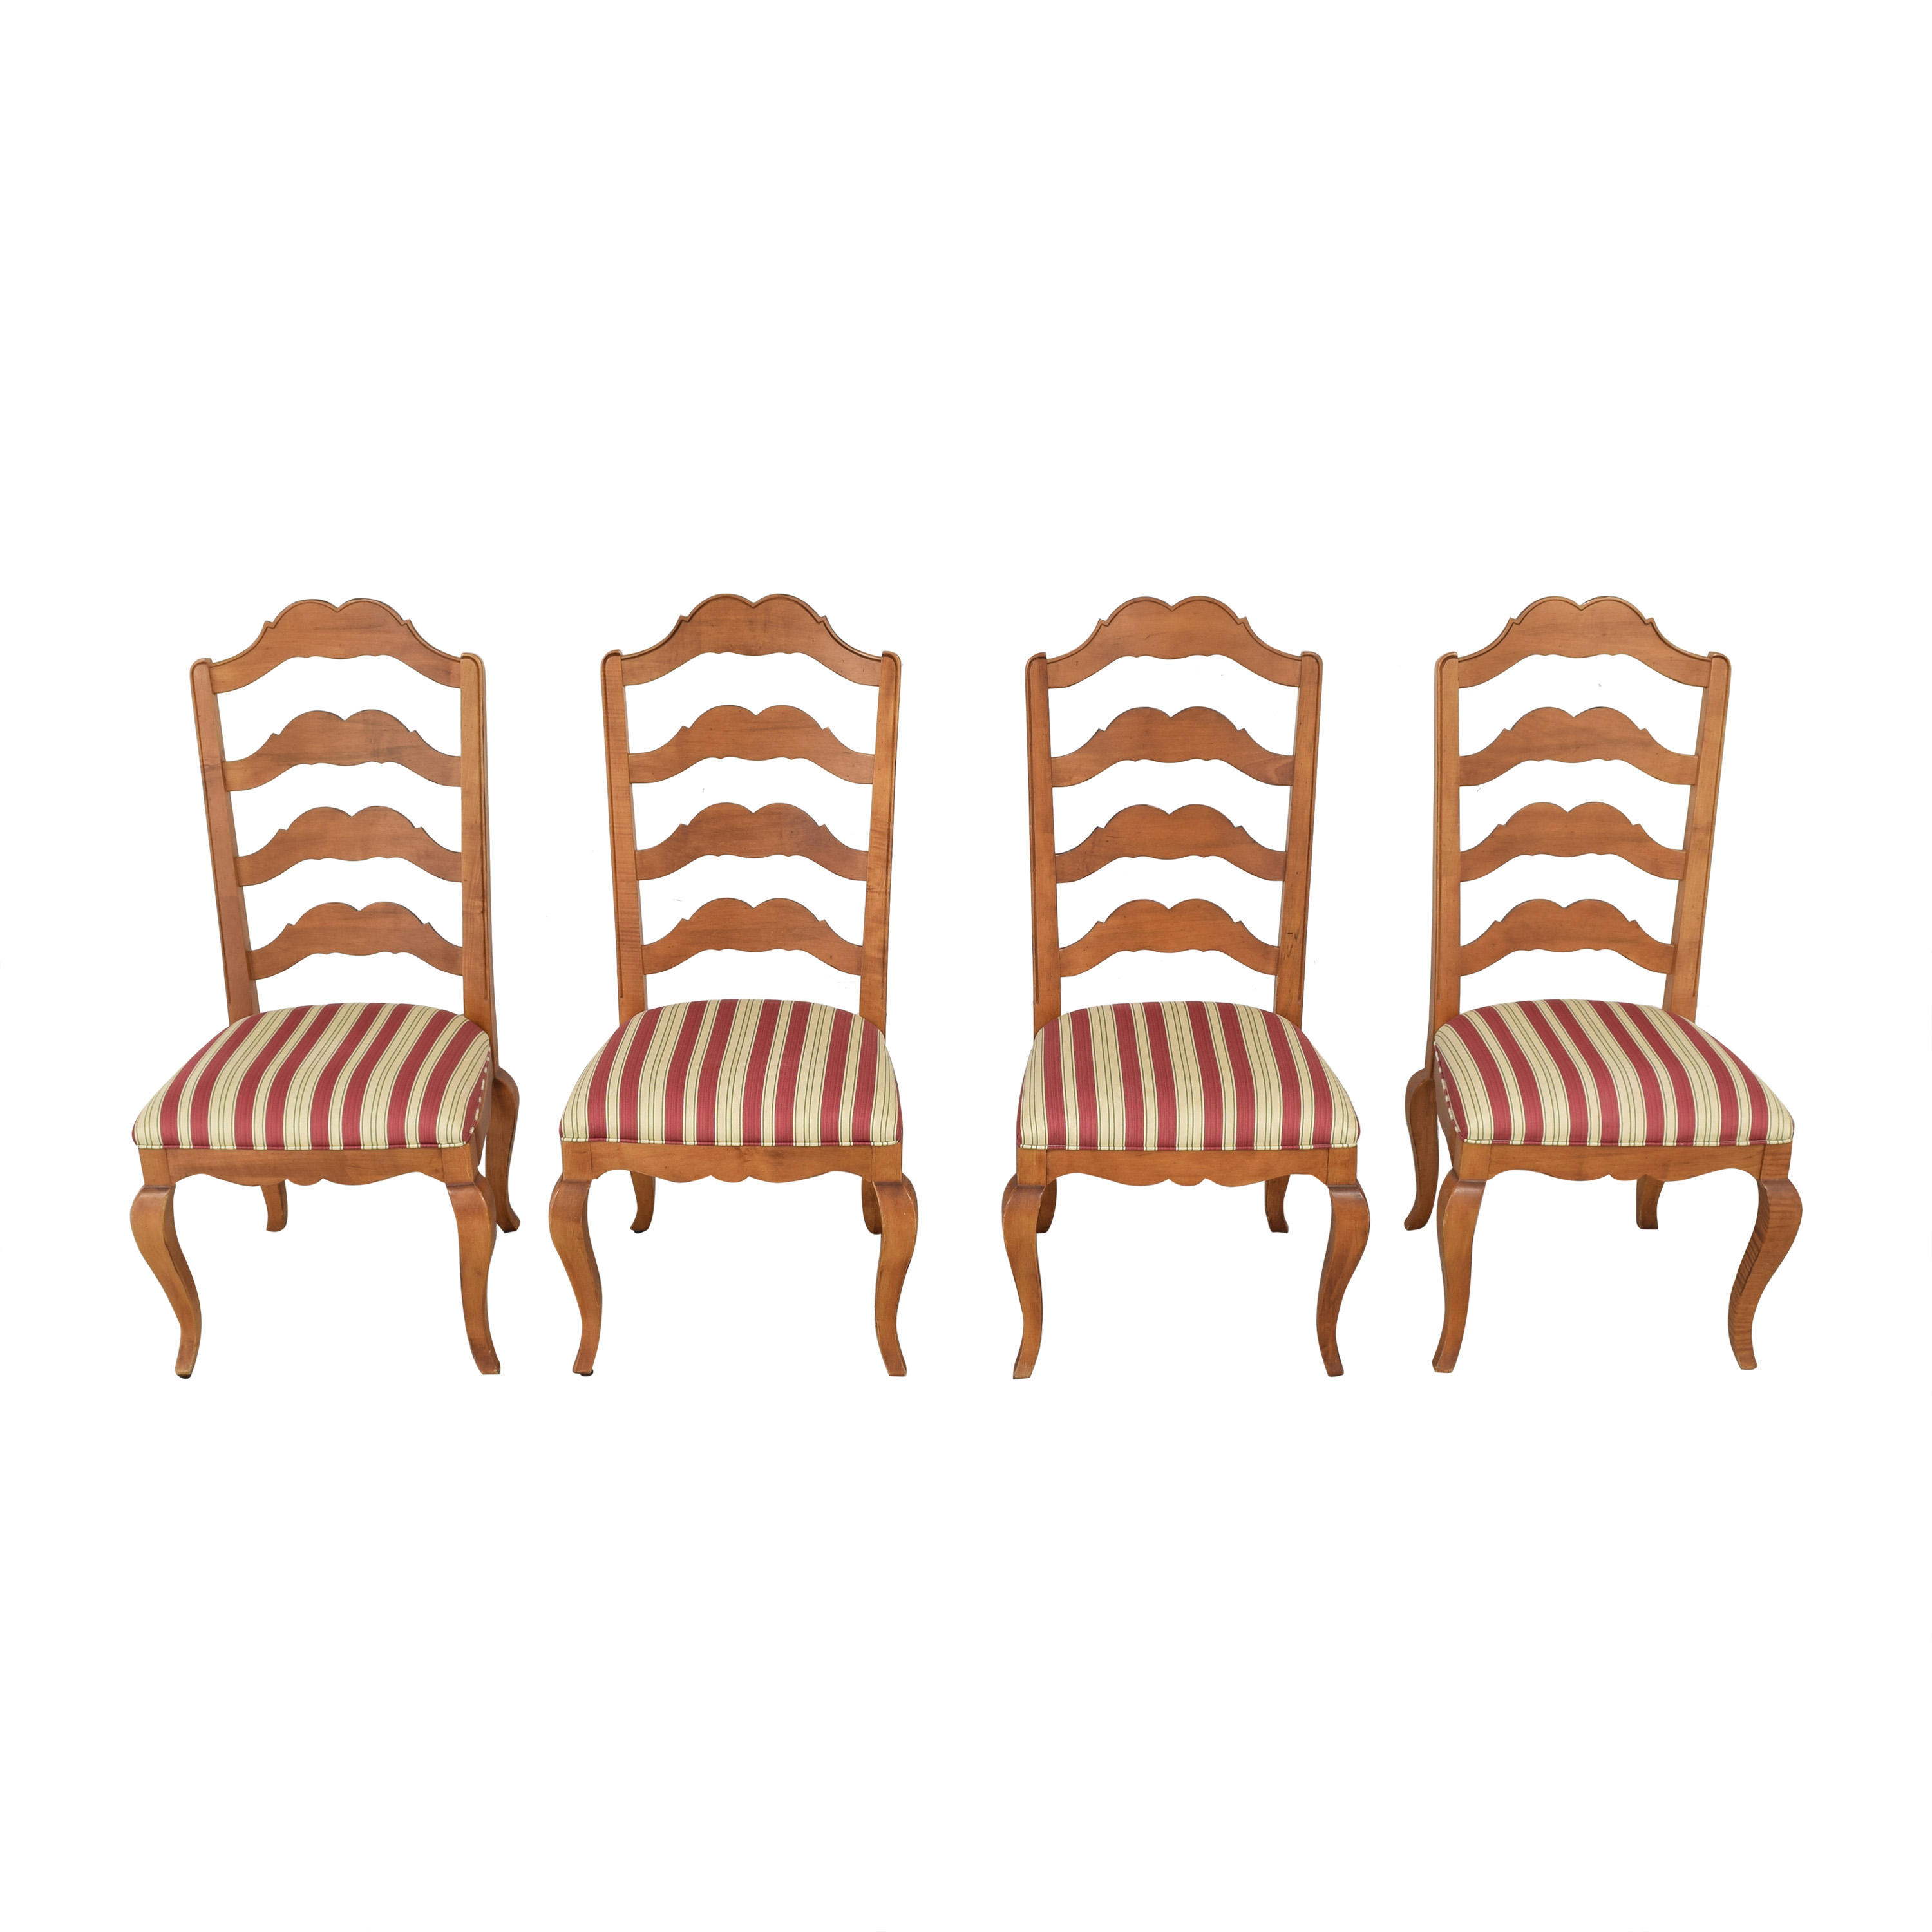 Ethan Allen Ethan Allen Upholstered Dining Chairs brown & red